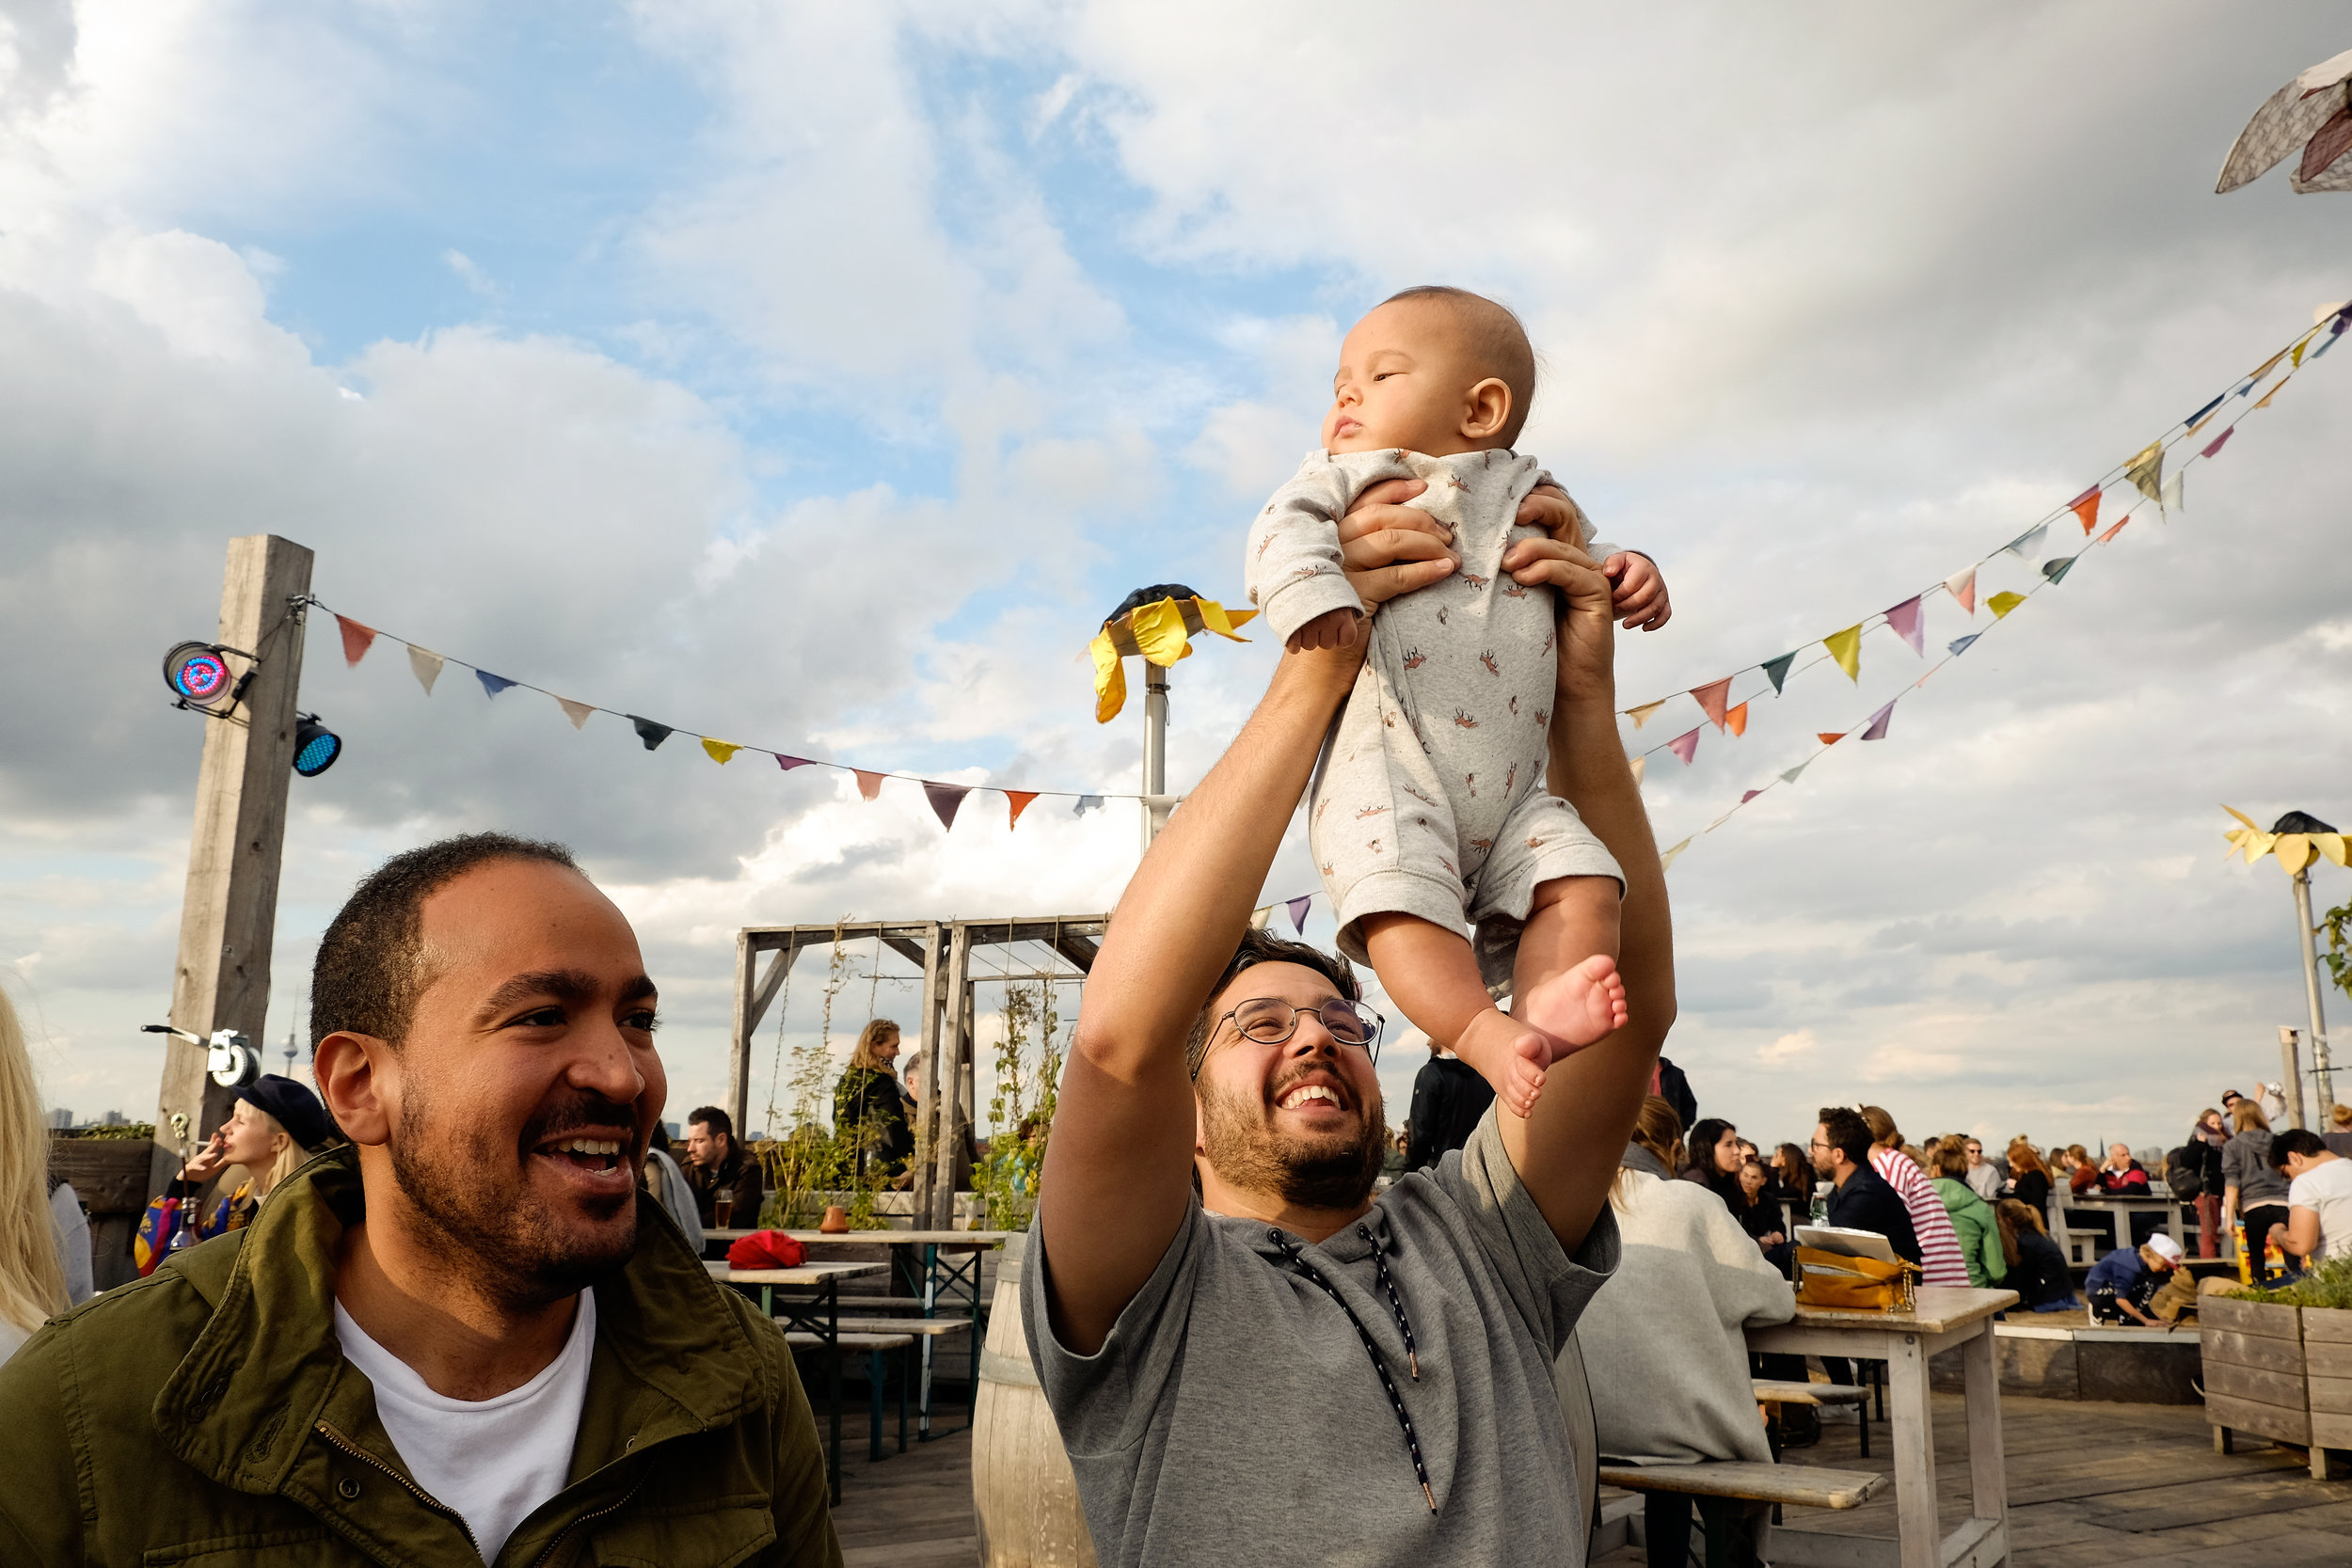 Baby Ezekiel just legally enjoying his Sunday afternoon at Klunkerkranich, a rooftop bar in Berlin.